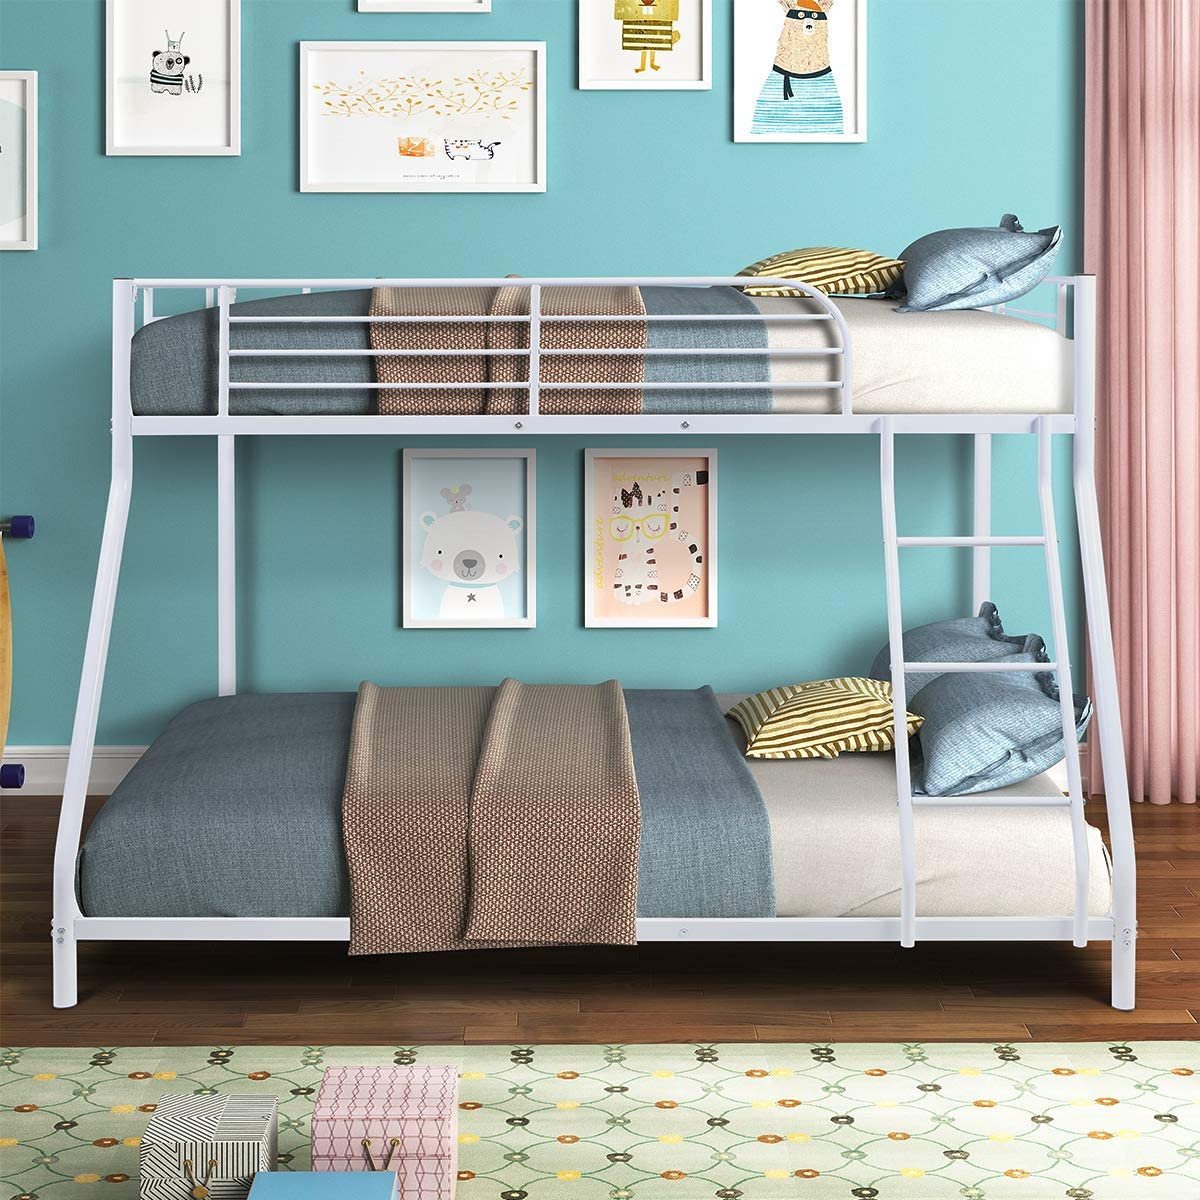 Bunk Bed Twin Over Full Sturdy New Free Shipping with L Steel Frame Metal Flat SEAL limited product